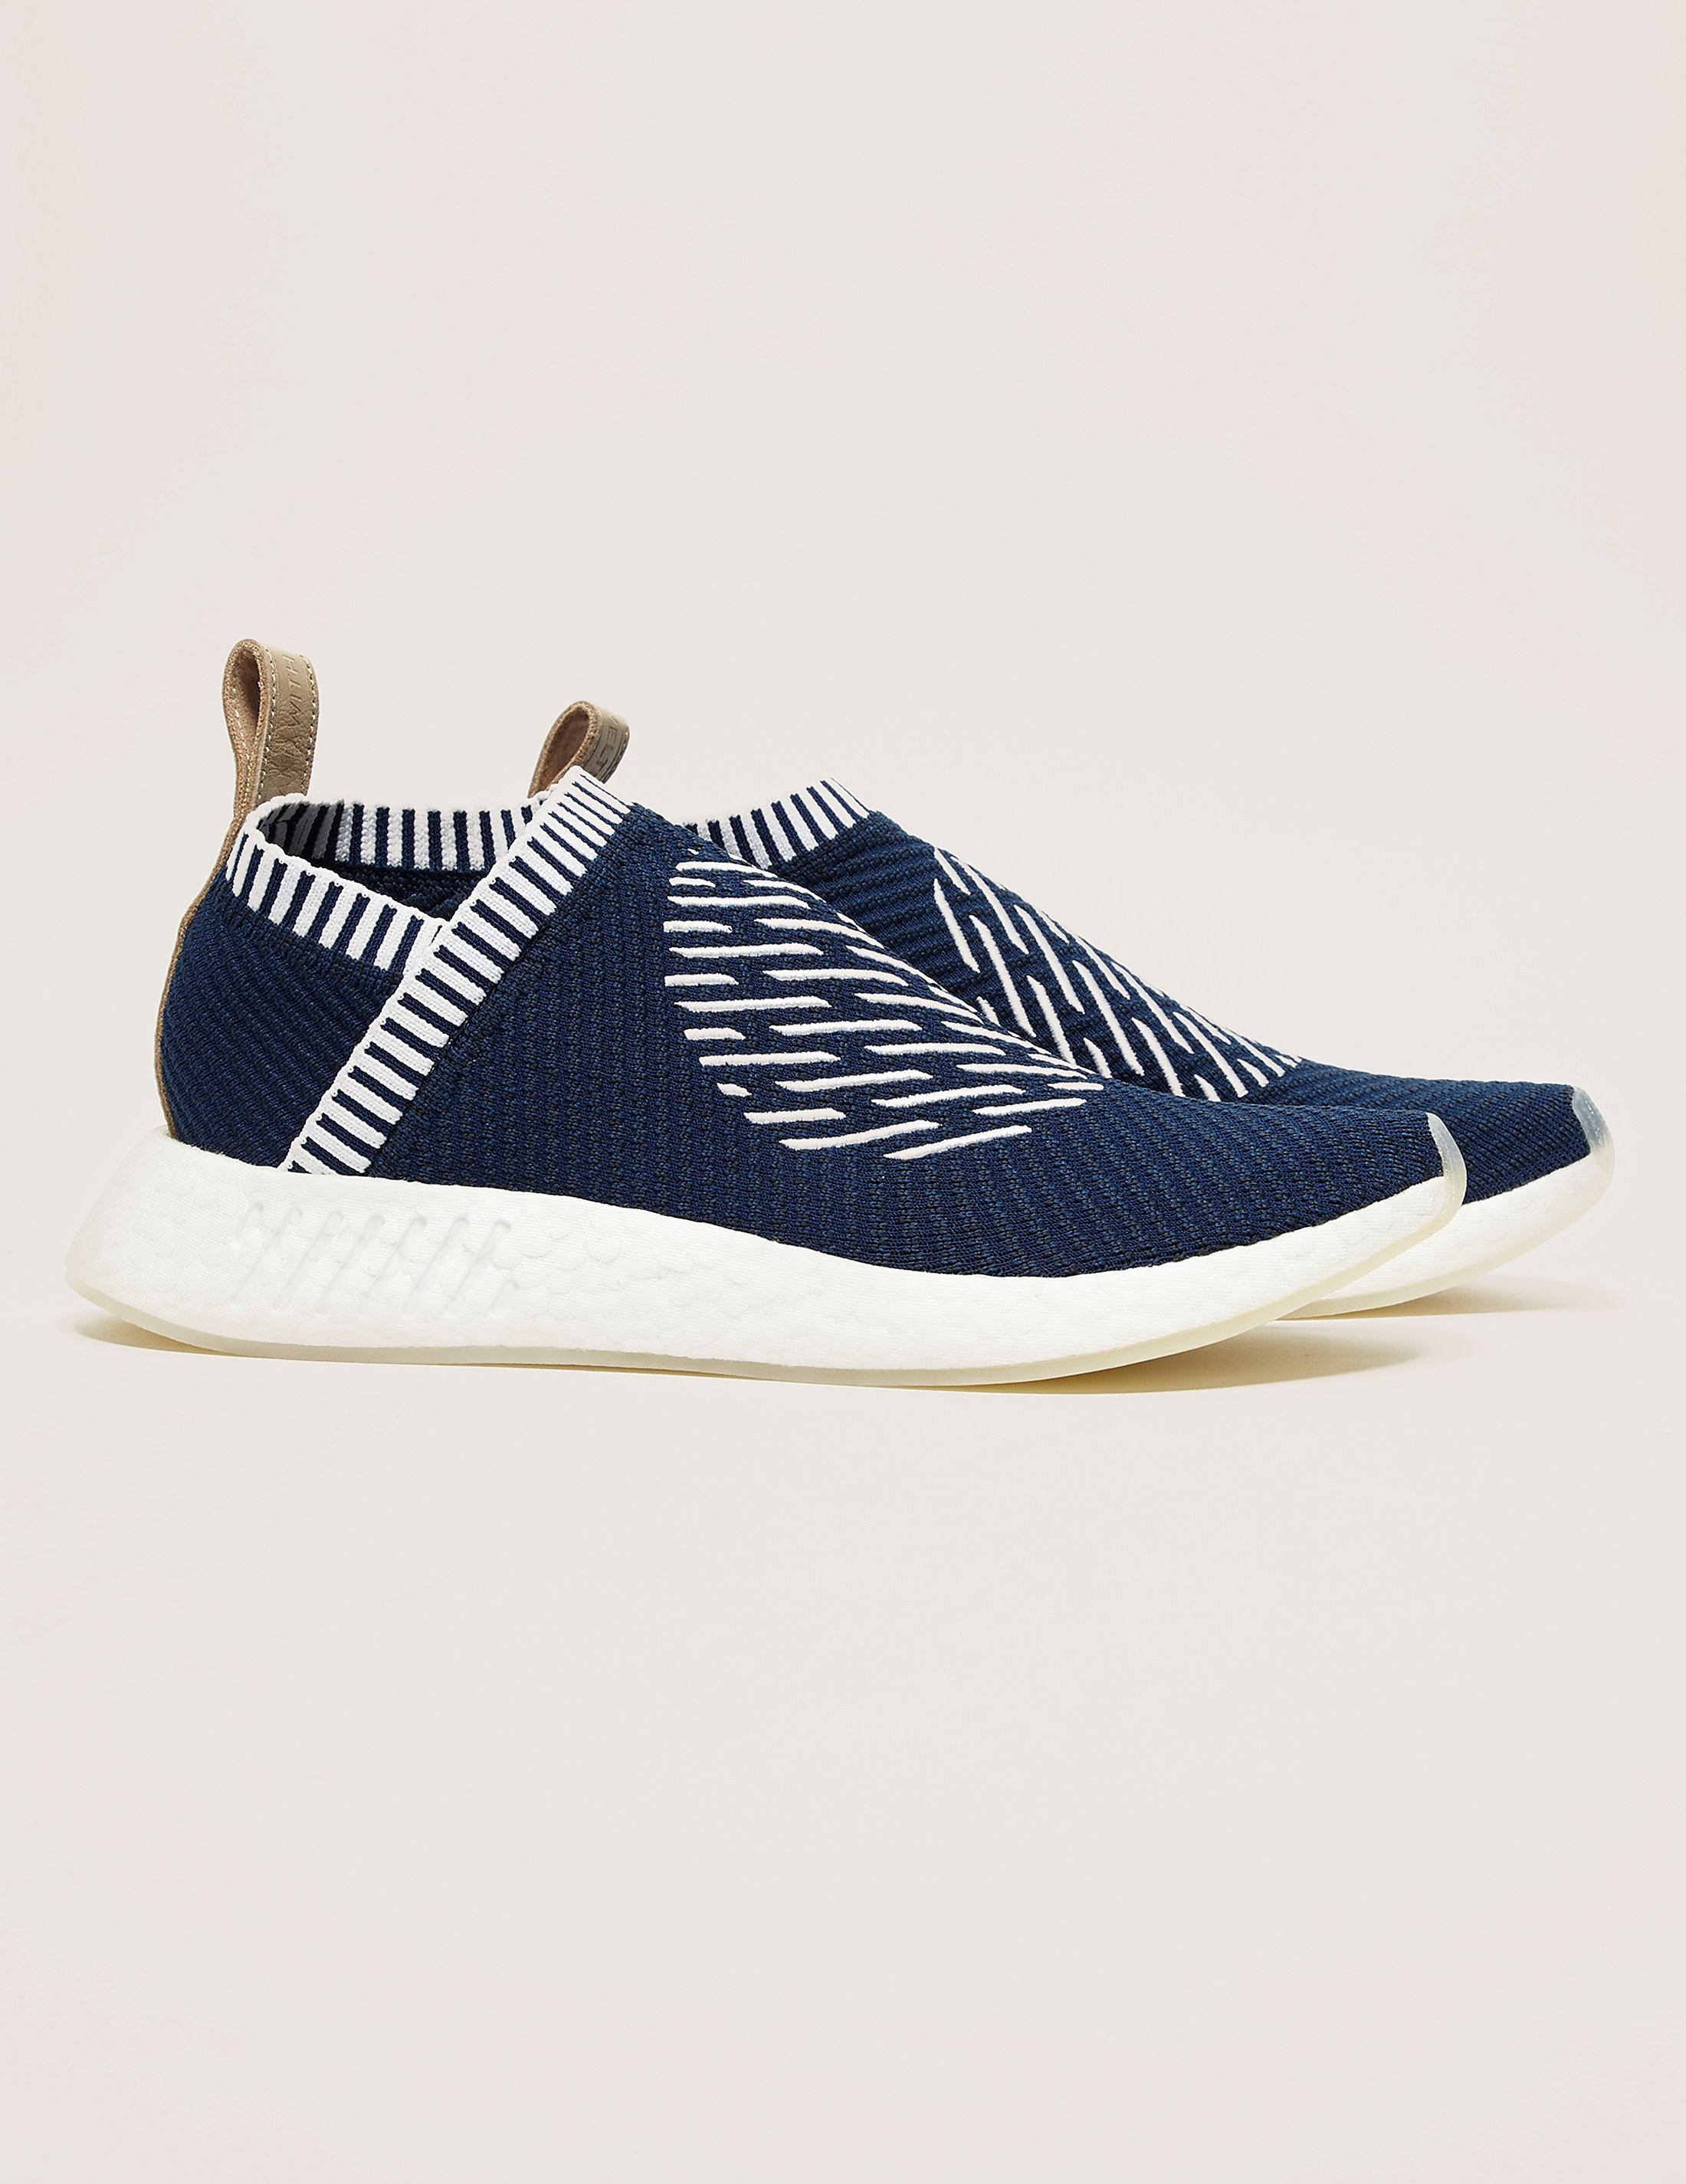 adidas Originals NMD_CS2 Primeknit